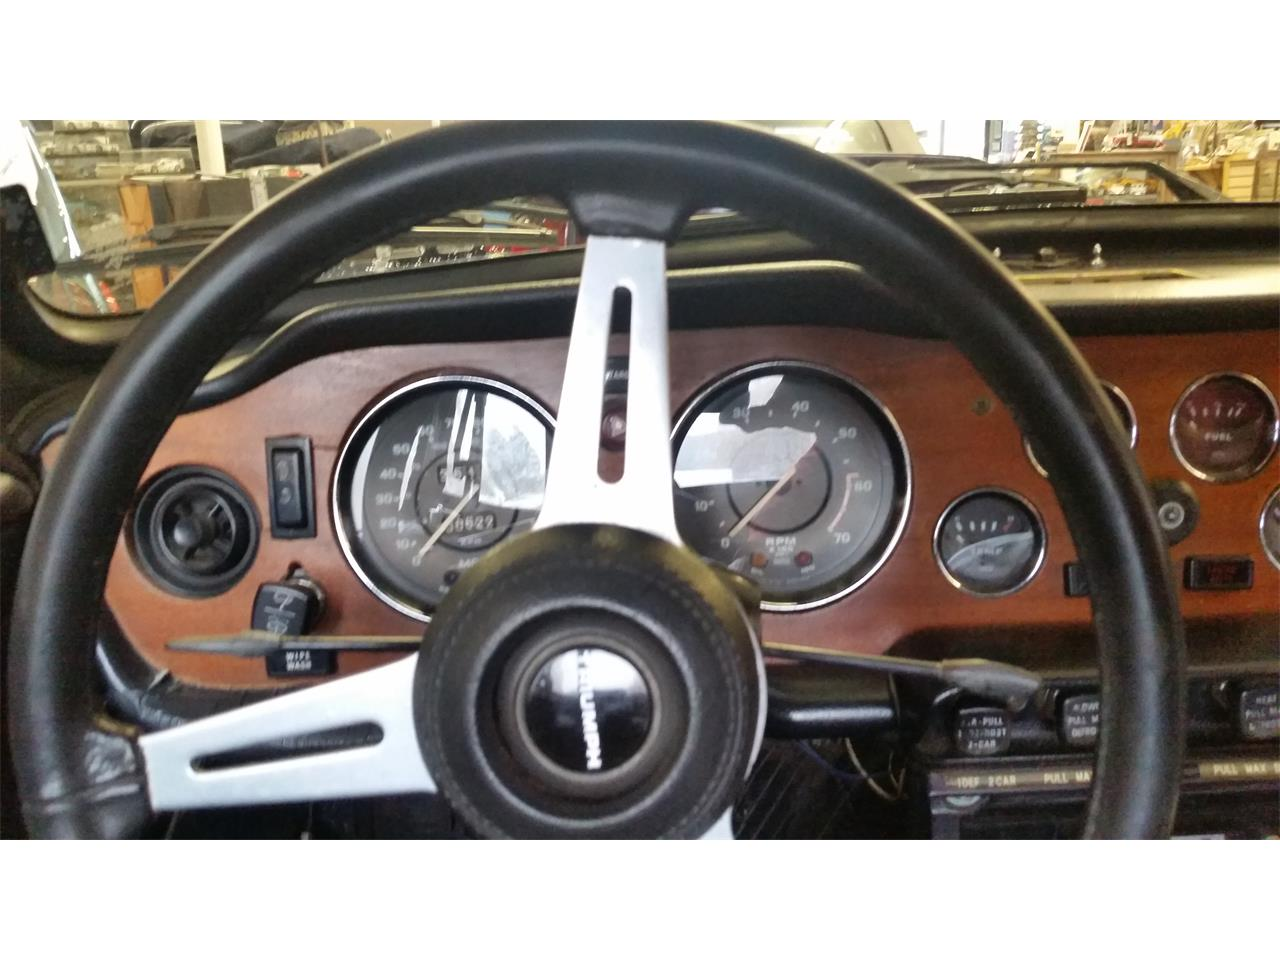 1973 Triumph TR6 for sale in Carnation, WA – photo 10